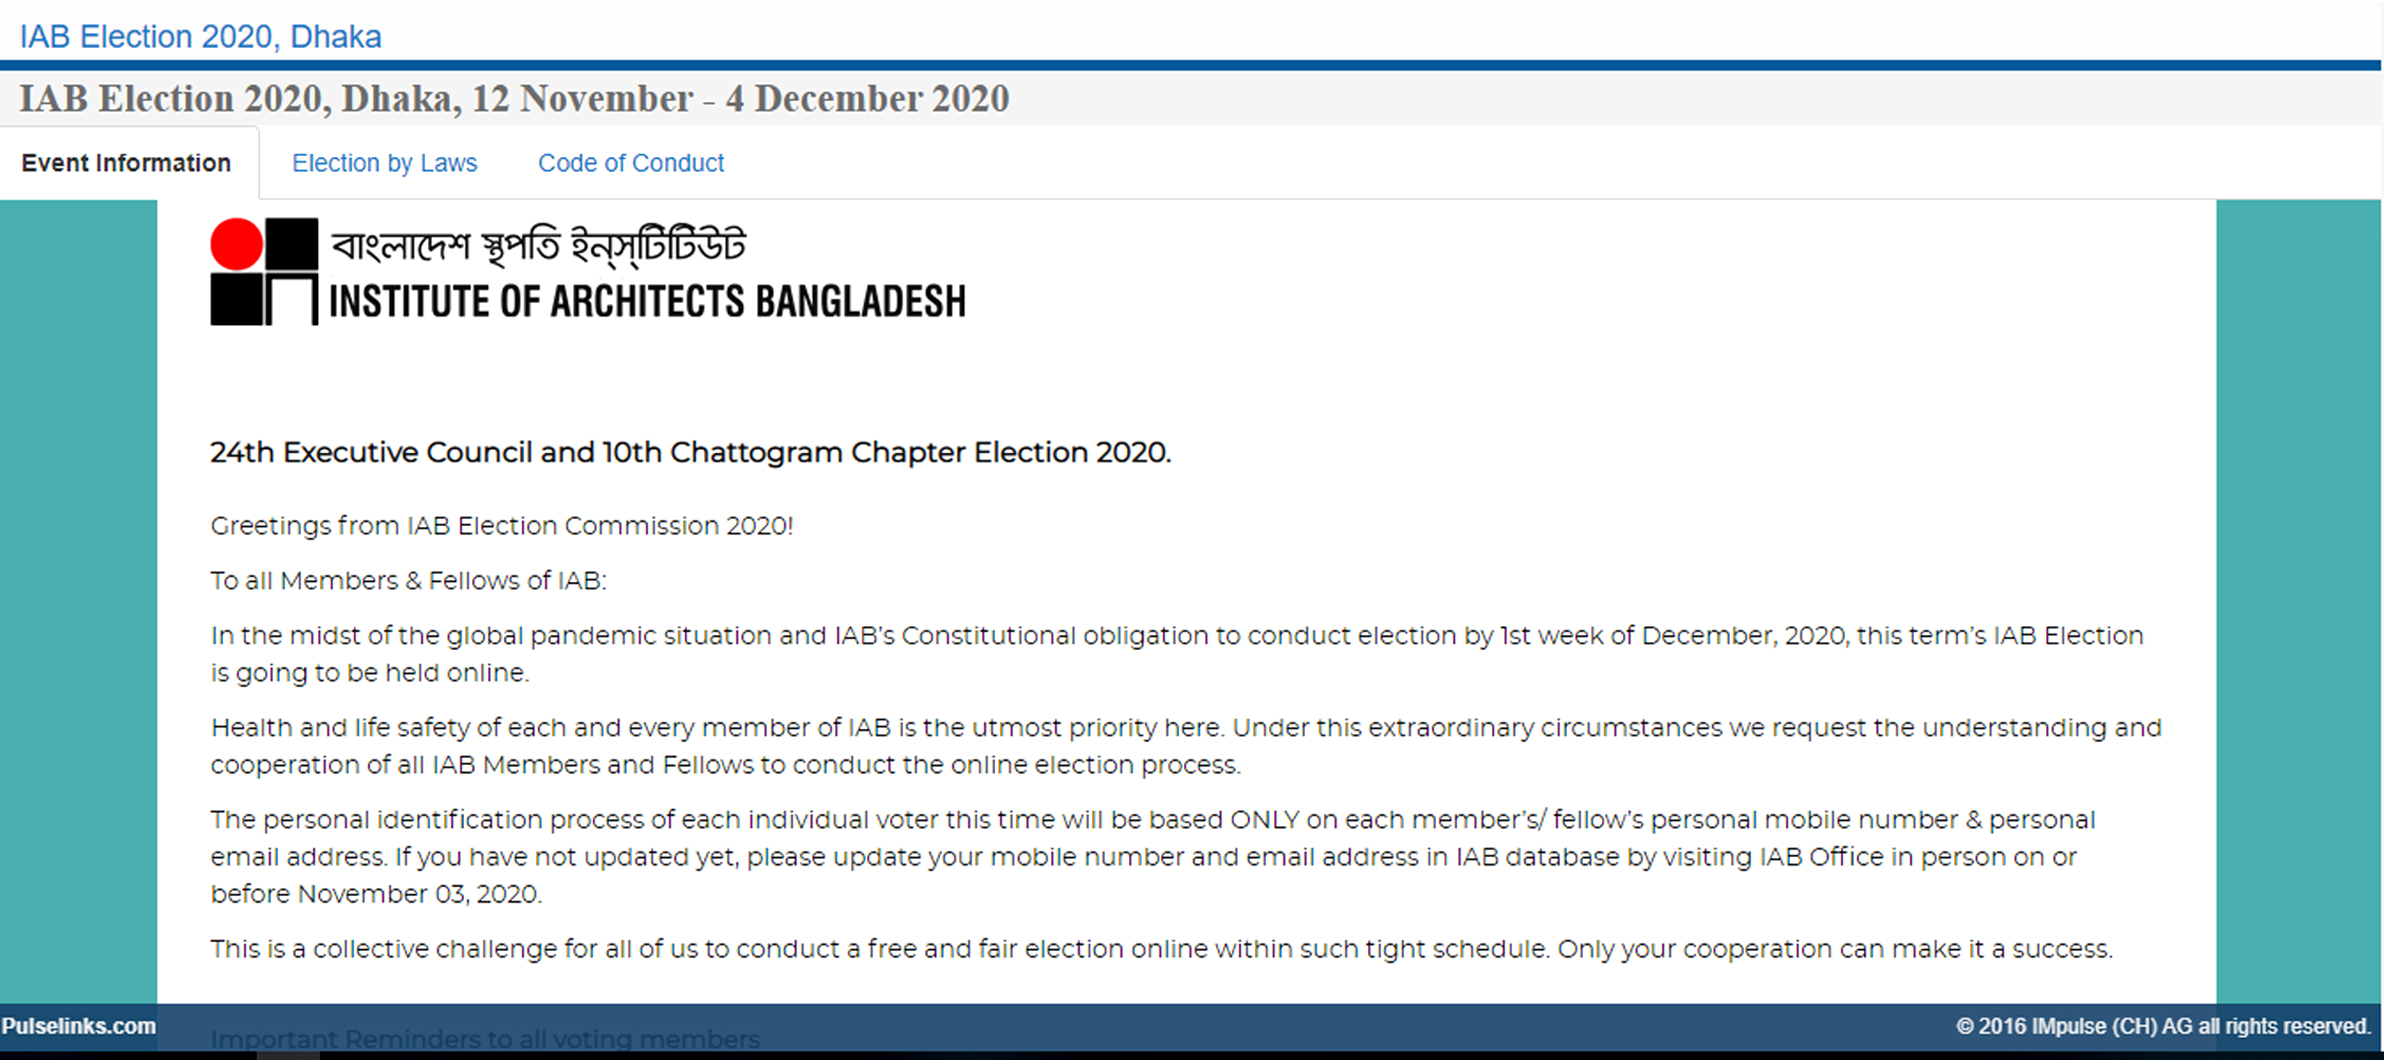 IAB Election 2020 Information Web Link